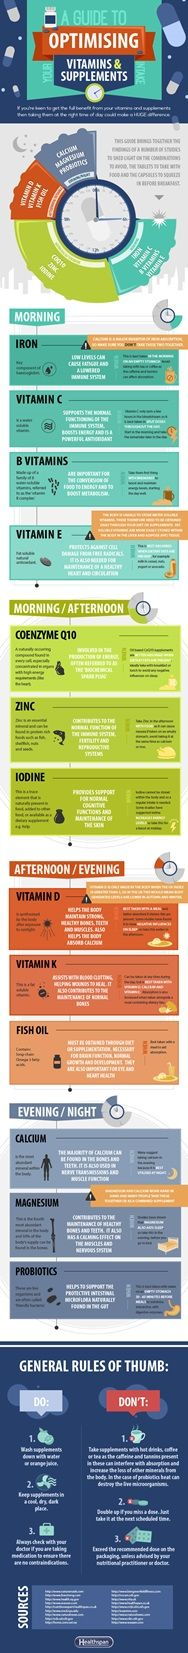 A guide to maximising your vitamins and supplements intake